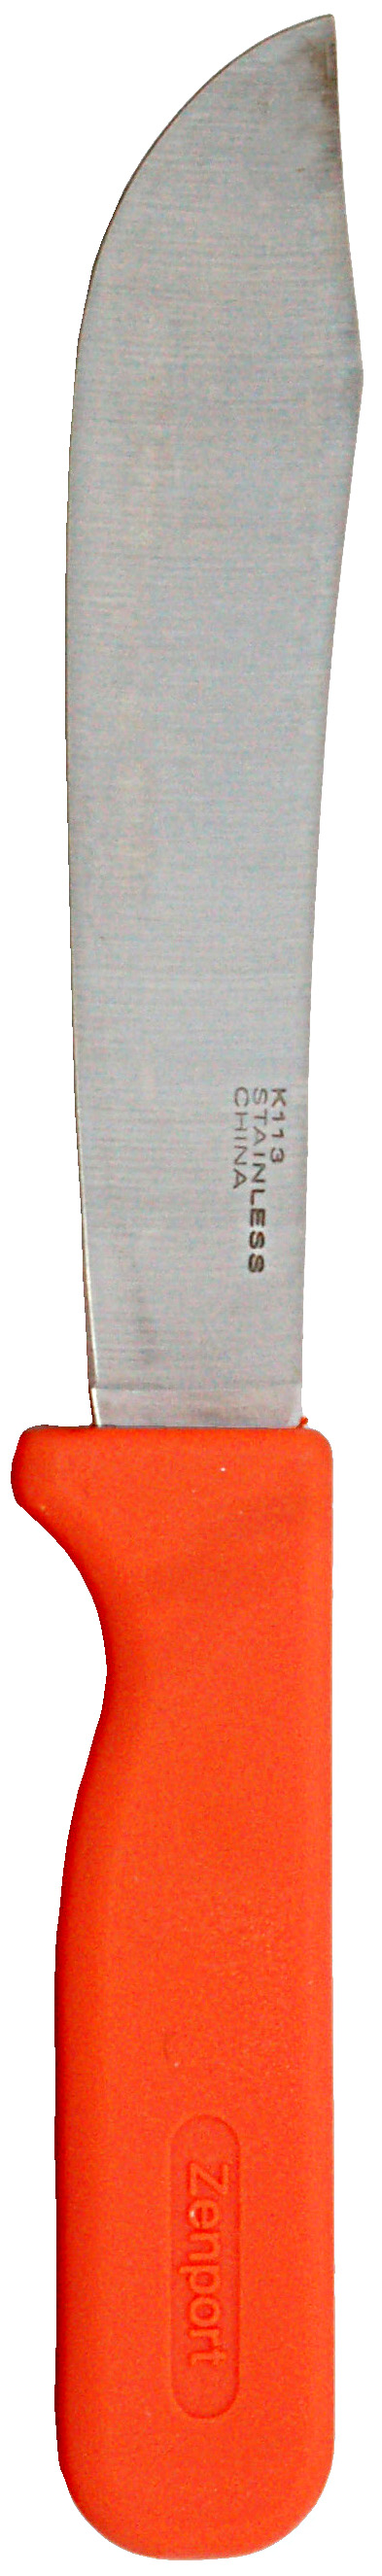 Cabbage Knife K113 Row Crop Harvest Knife, Hops and Cabbage, 6.75-Inch Stainless Steel Blade